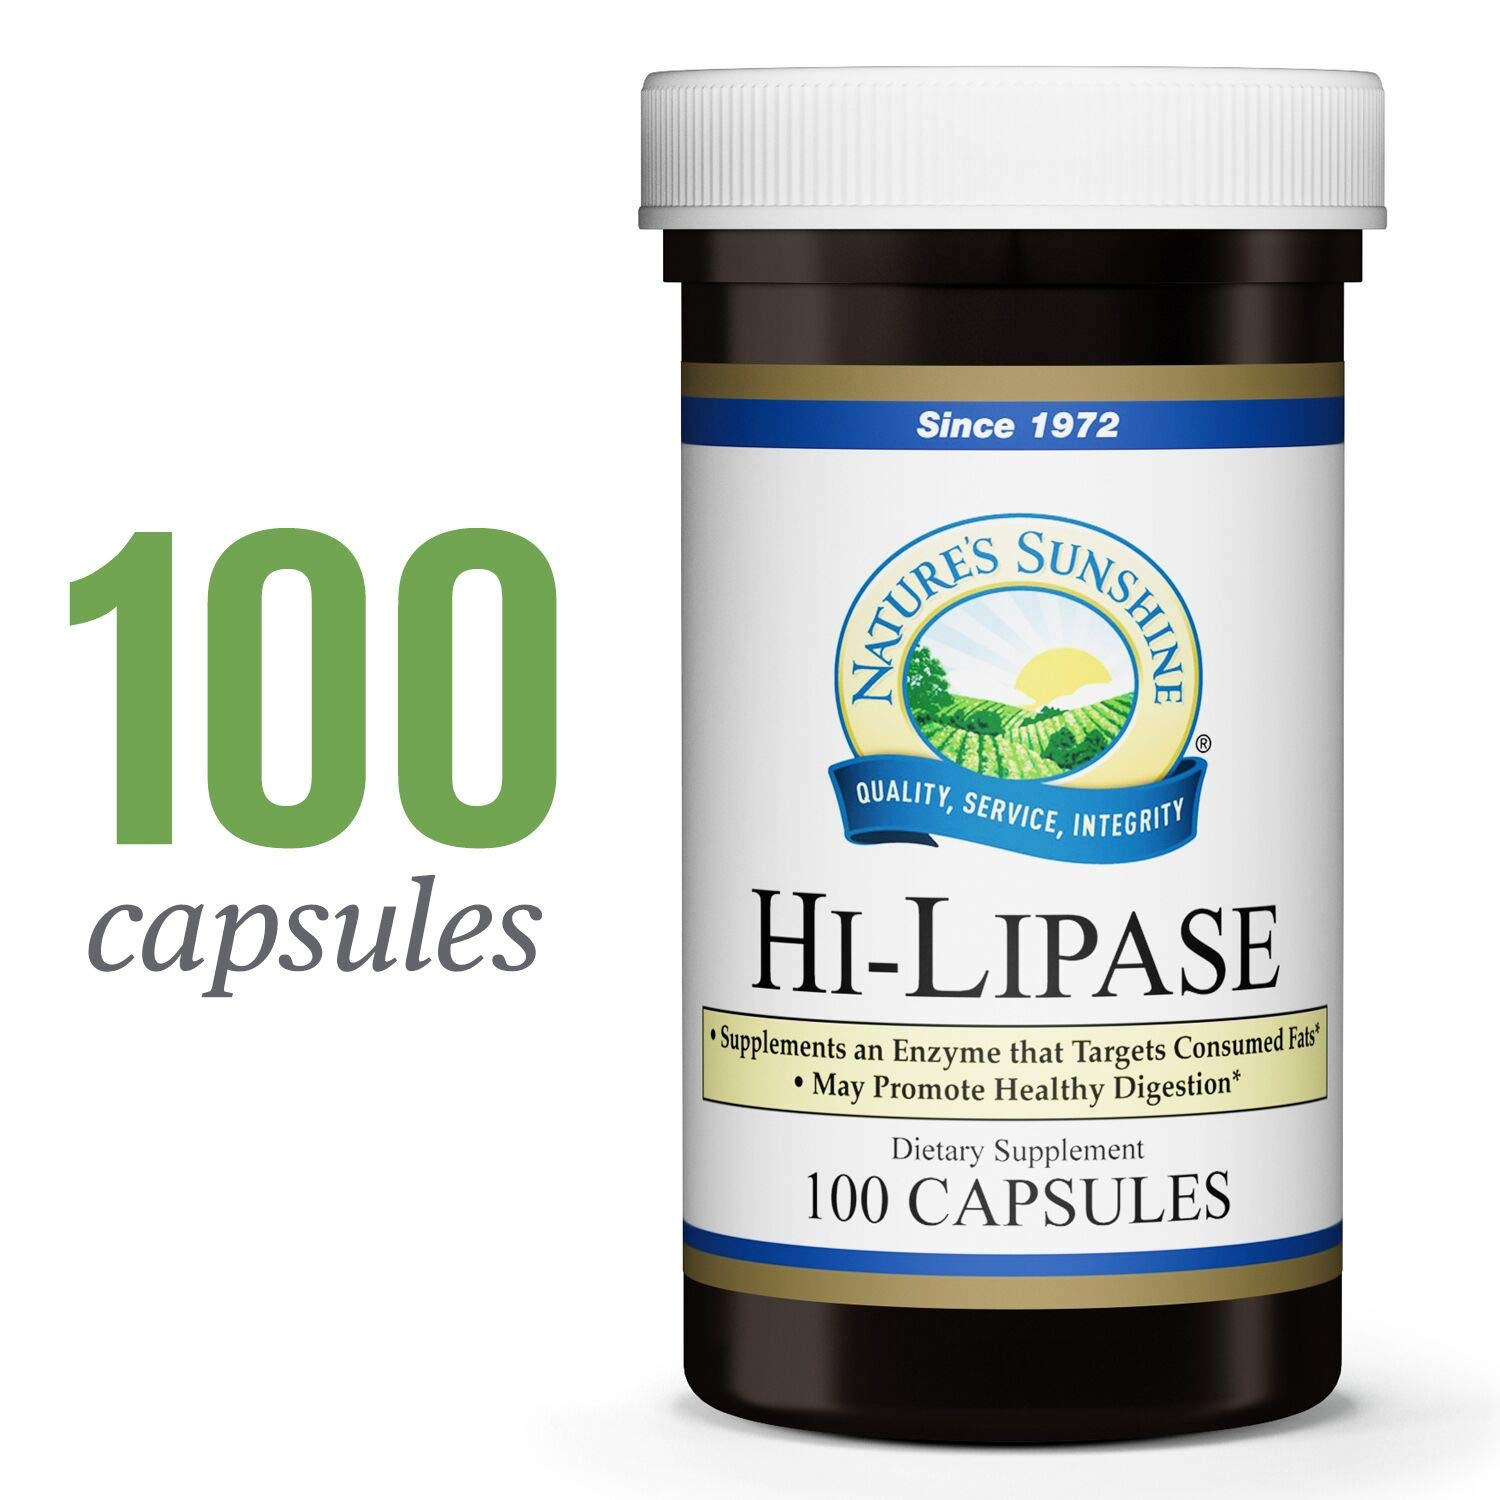 Nature's Sunshine Hi Lipase Dietary Supplement, 100 Capsules | Powerful Enzyme Supplement That Allows The Digestive System to Digest Fats by Nature's Sunshine